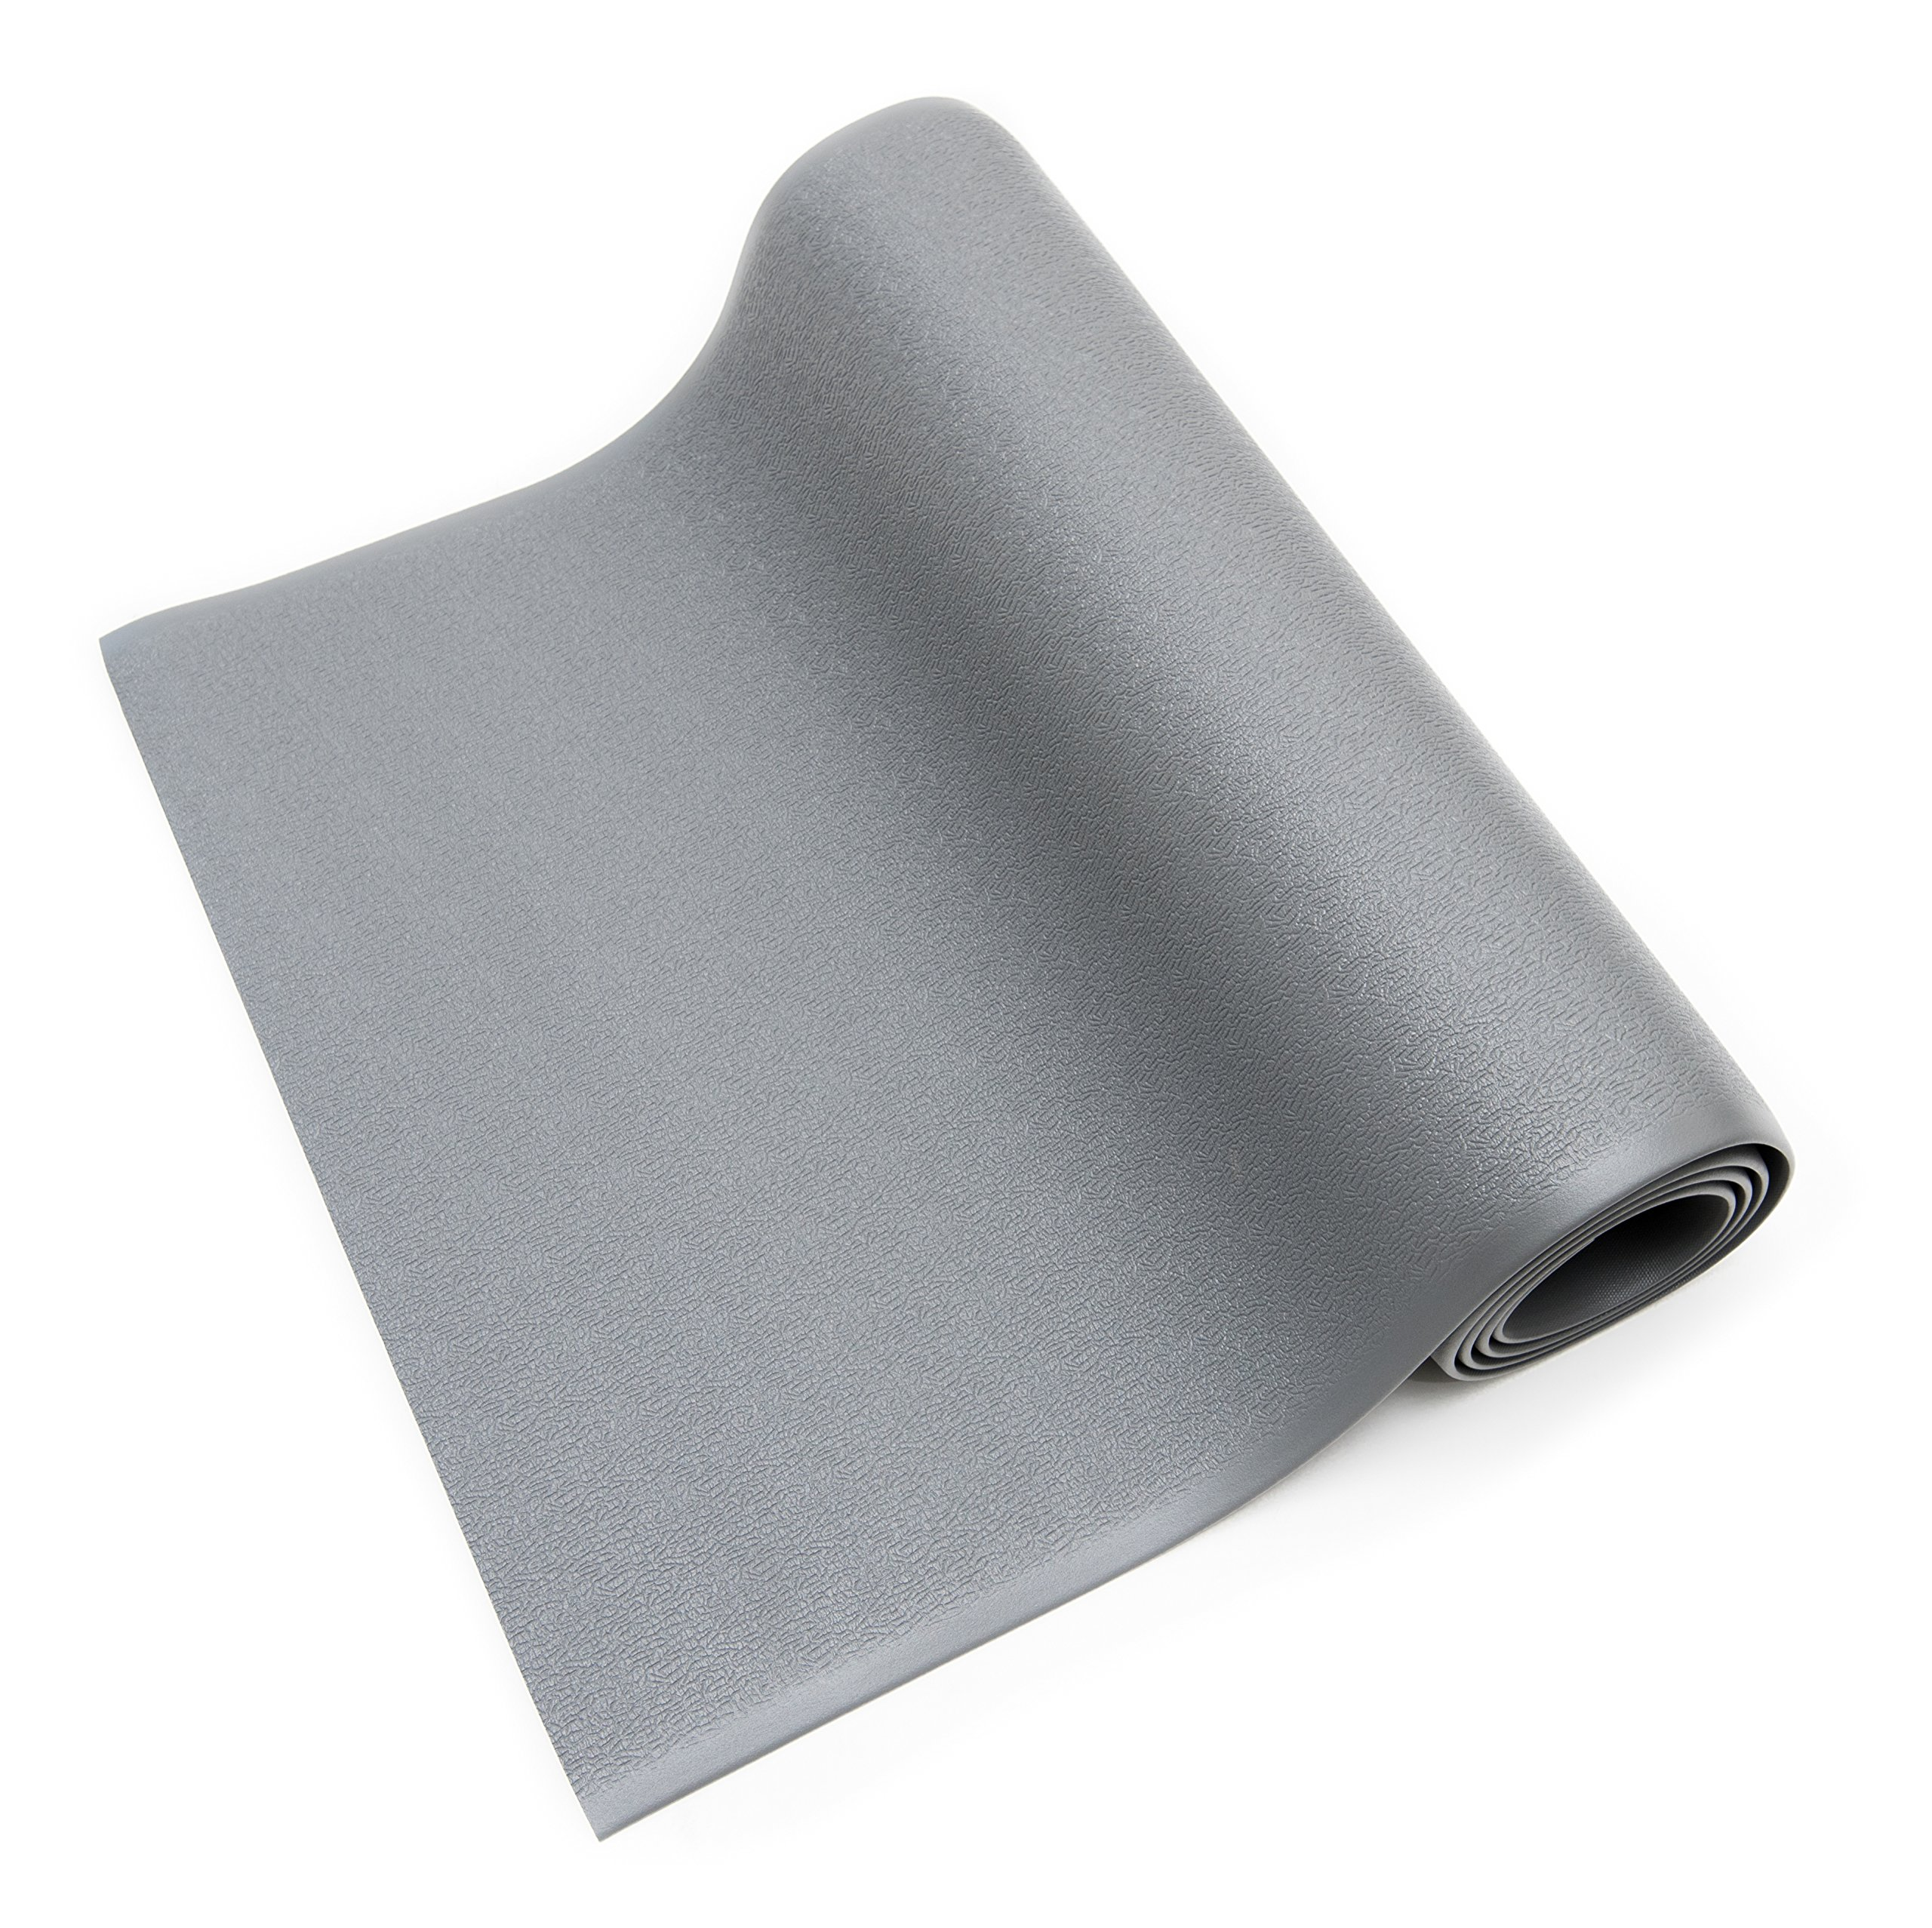 Bertech ESD Anti Fatigue Floor Mat Roll, 3' Wide x 10' Long x 0.375'' Thick, Gray (Made in USA)